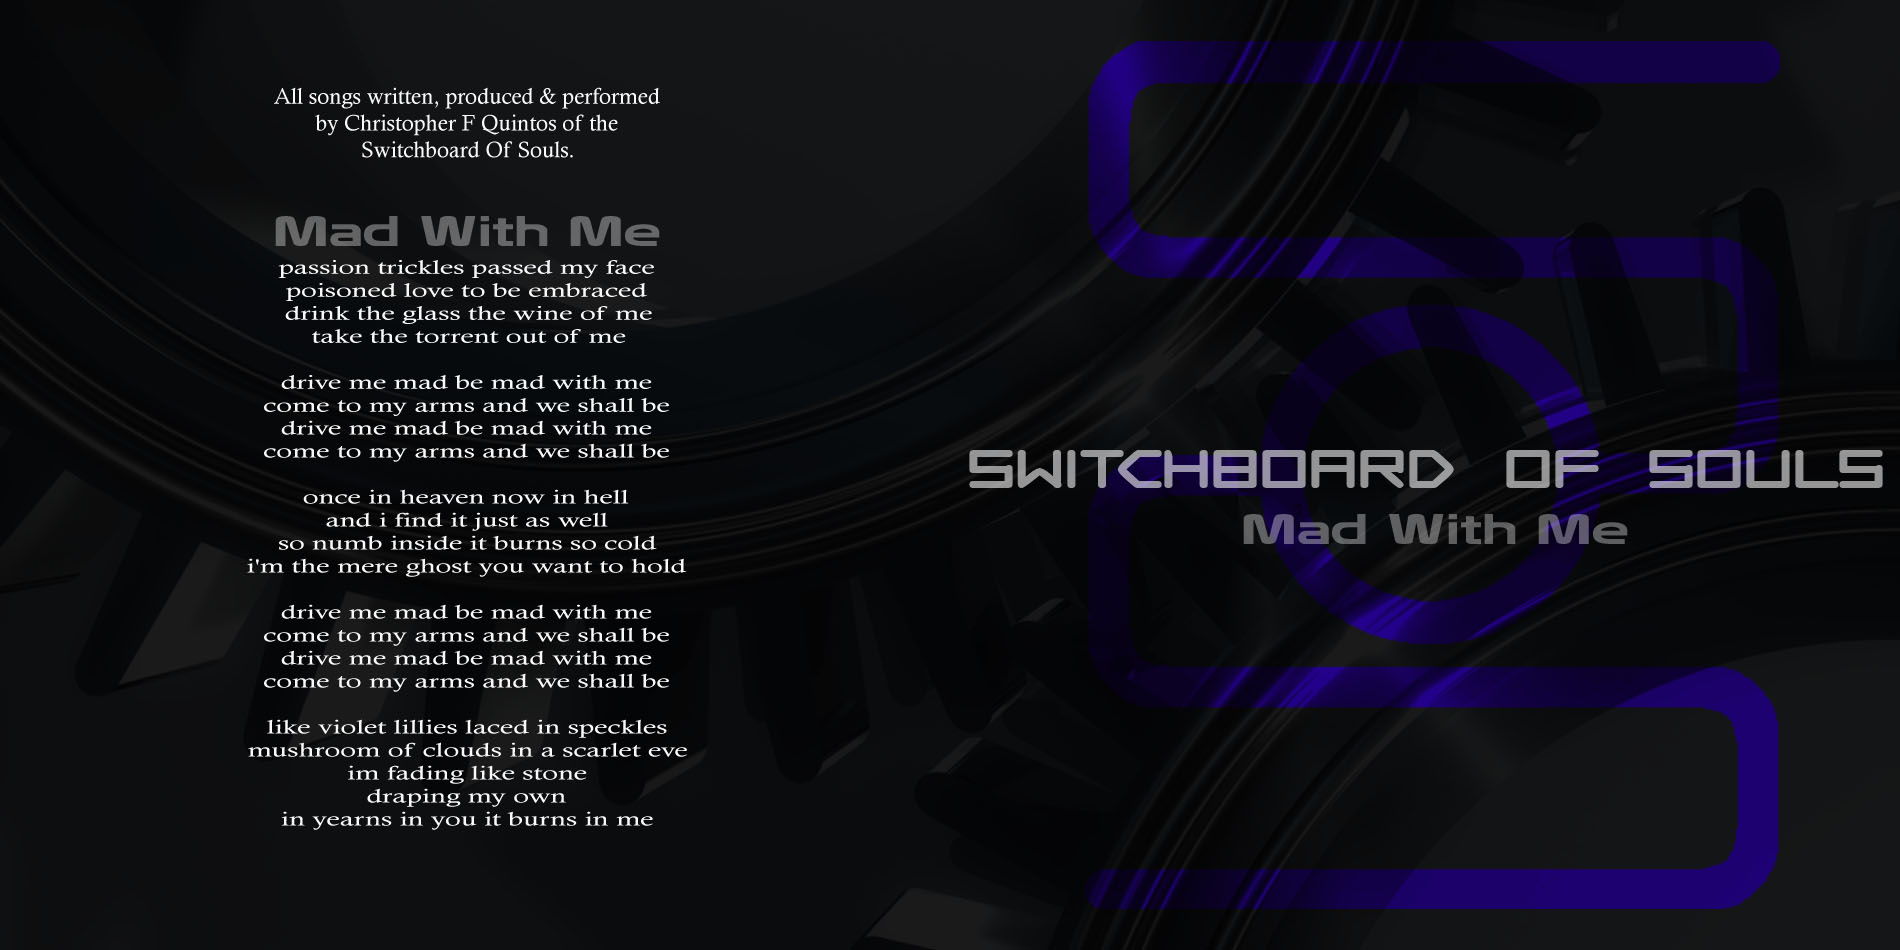 qd-4251 Switchboard of Souls -Mad with Me